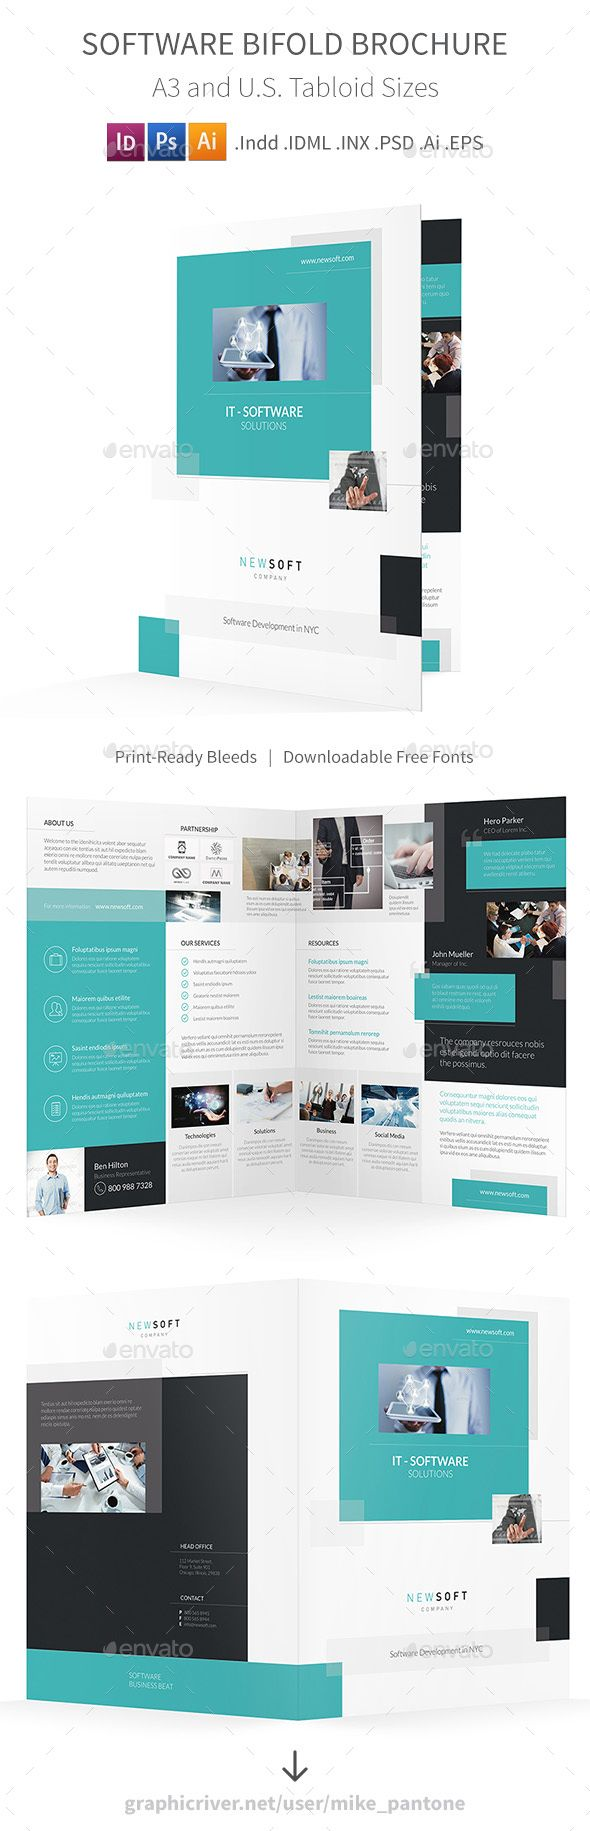 software company bifold halffold brochure template psd vector eps indesign indd ai illustrator